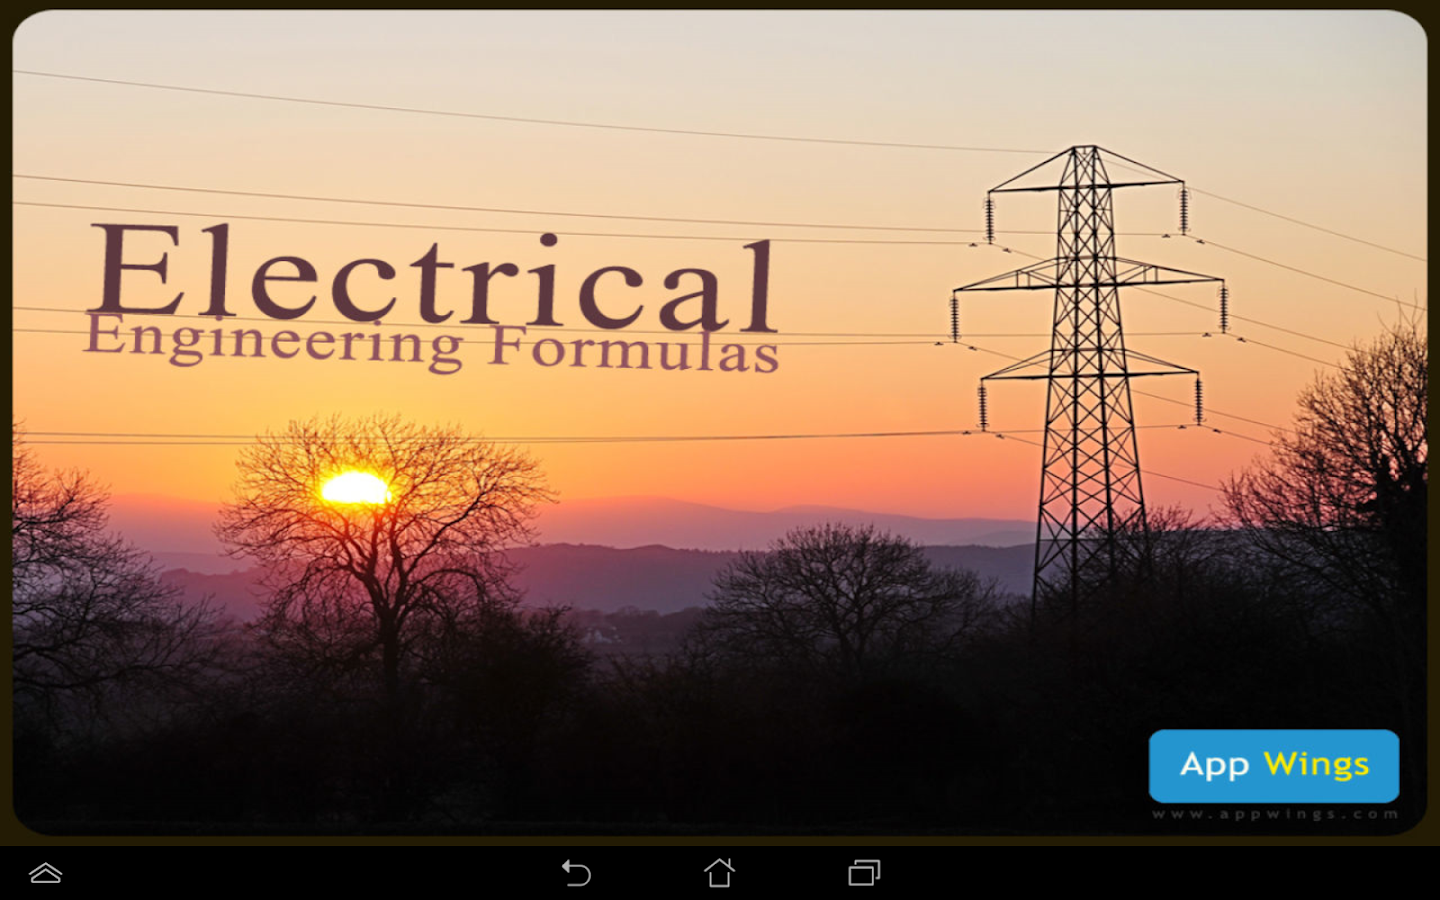 electrical engg formulas - android apps on google play, Powerpoint templates